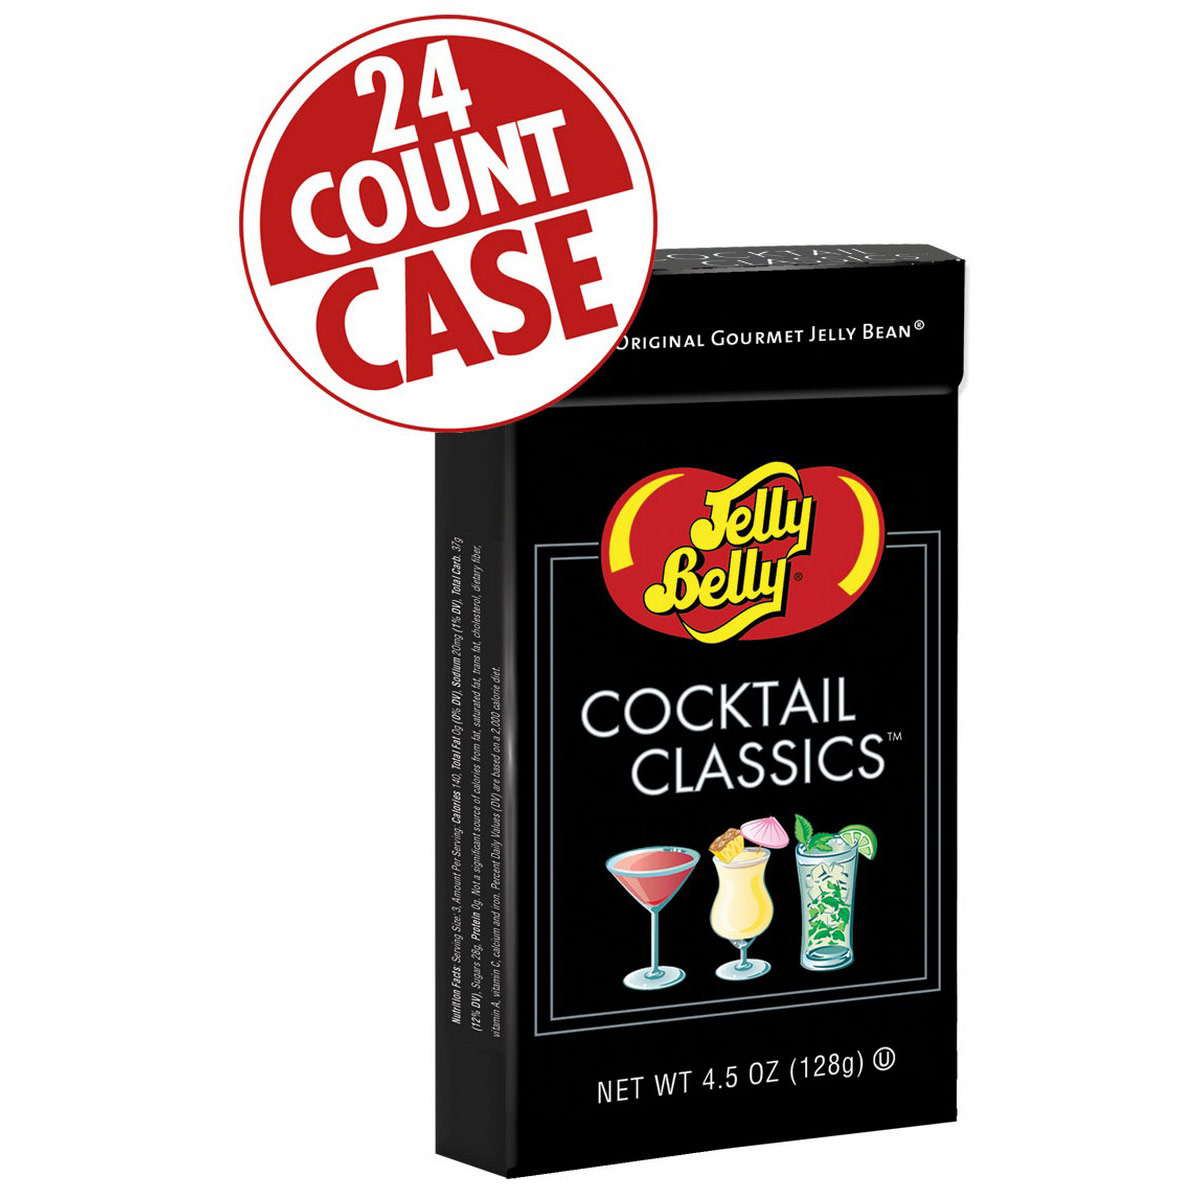 Cocktail Classics<sup>®</sup> Jelly Beans Mix - 4.5 oz Flip-Top Boxes - 24-Count Case